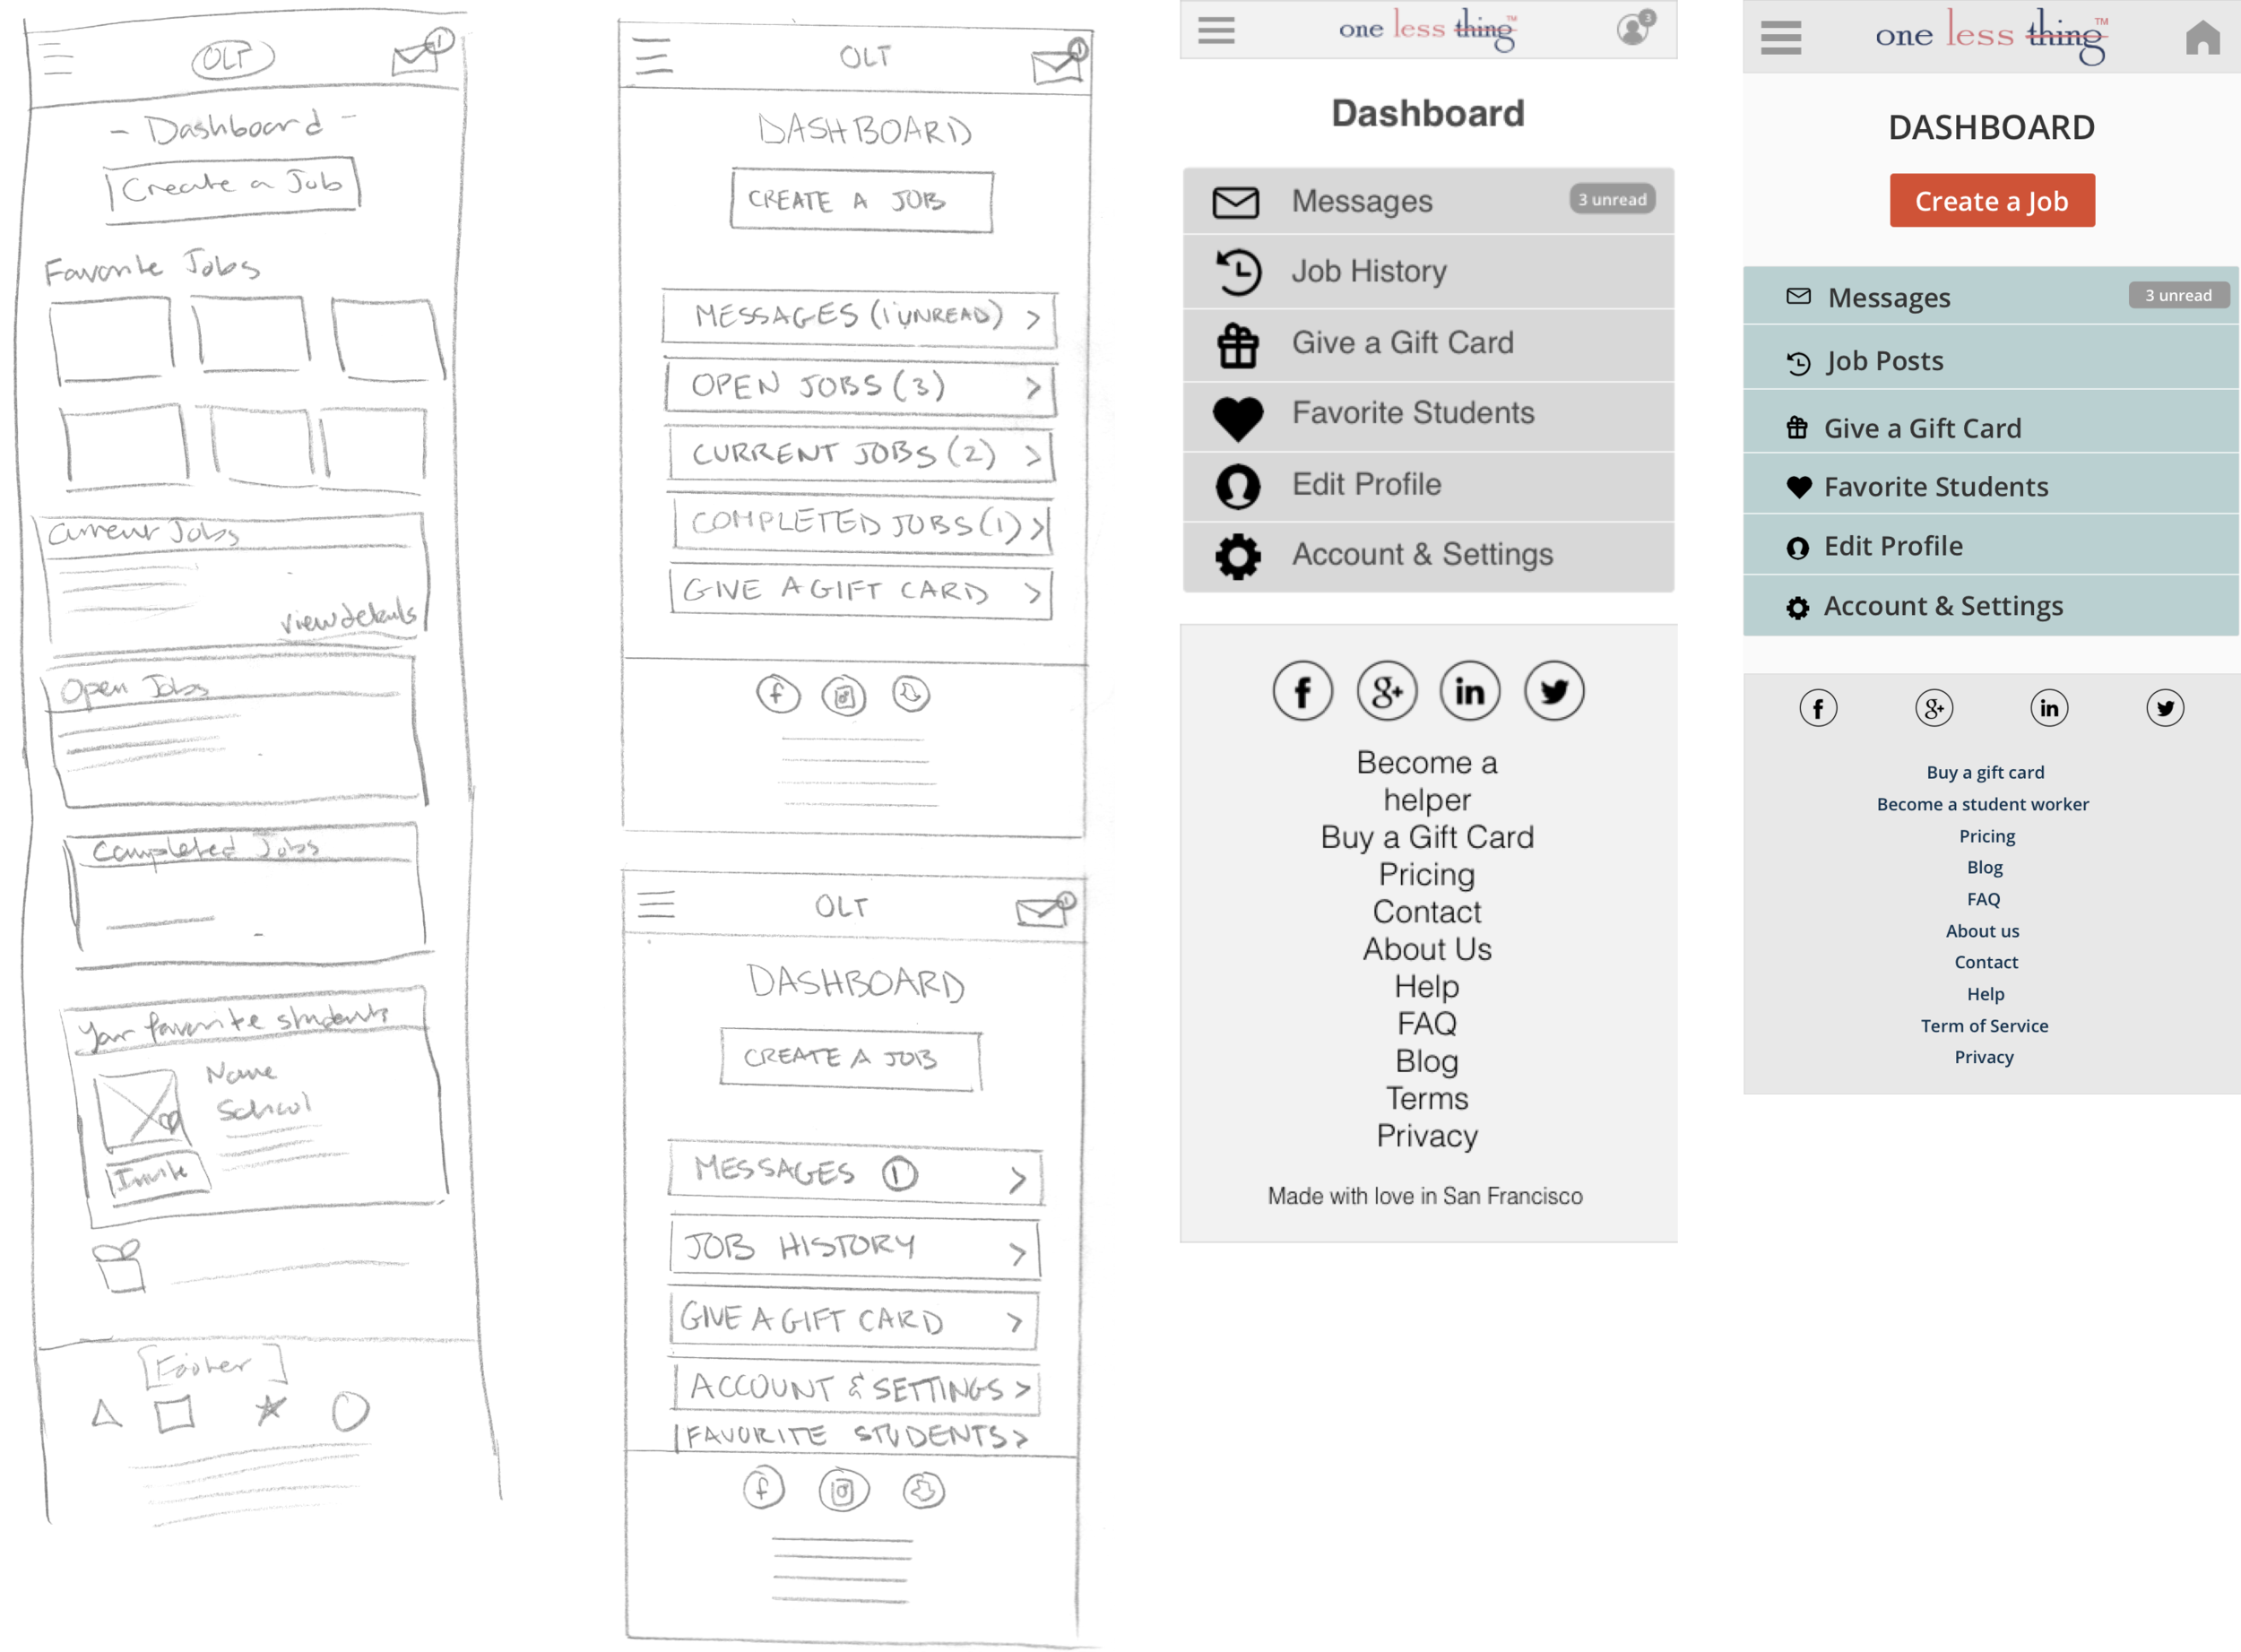 Iterations of the Dashboard page